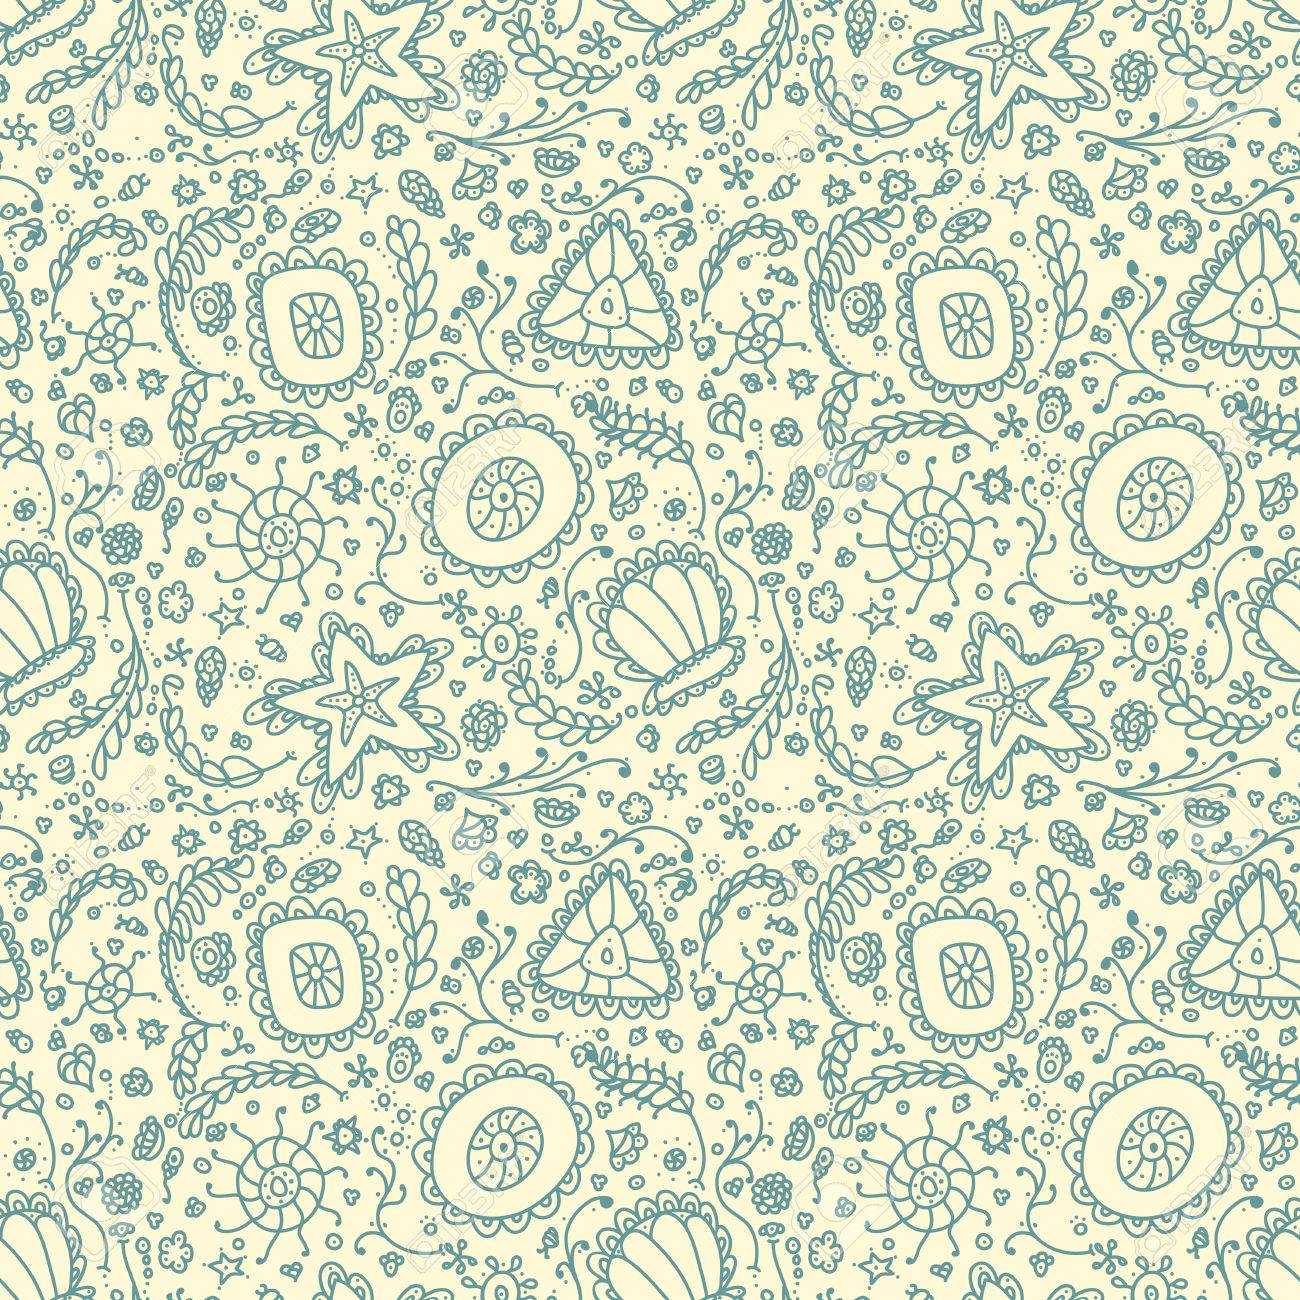 Handmade Seamless Pattern Or Background With Abstract Protozoa 1300x1300